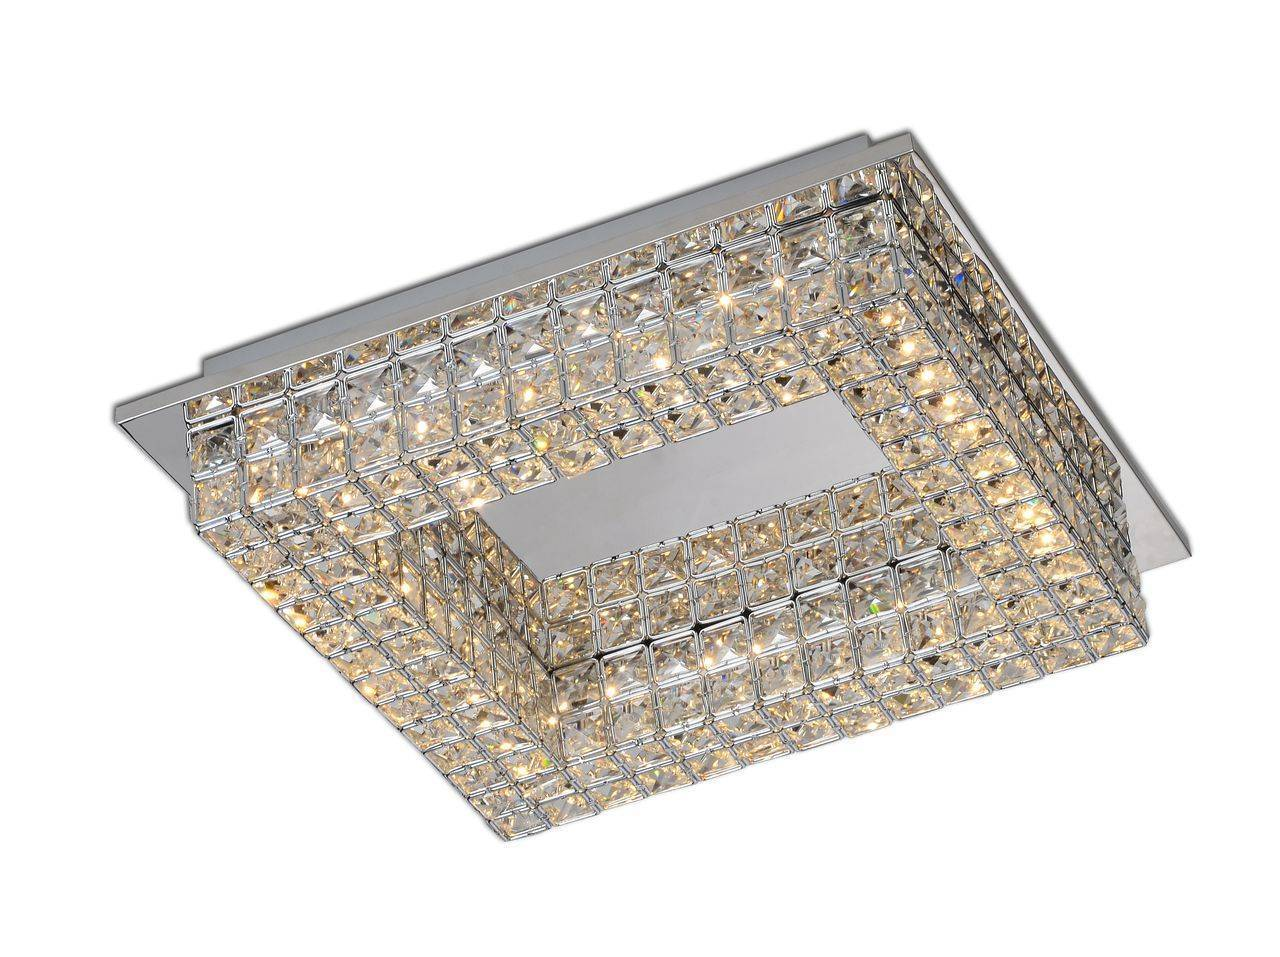 Светильник Mantra Crystal Led 4586 Crystal-led